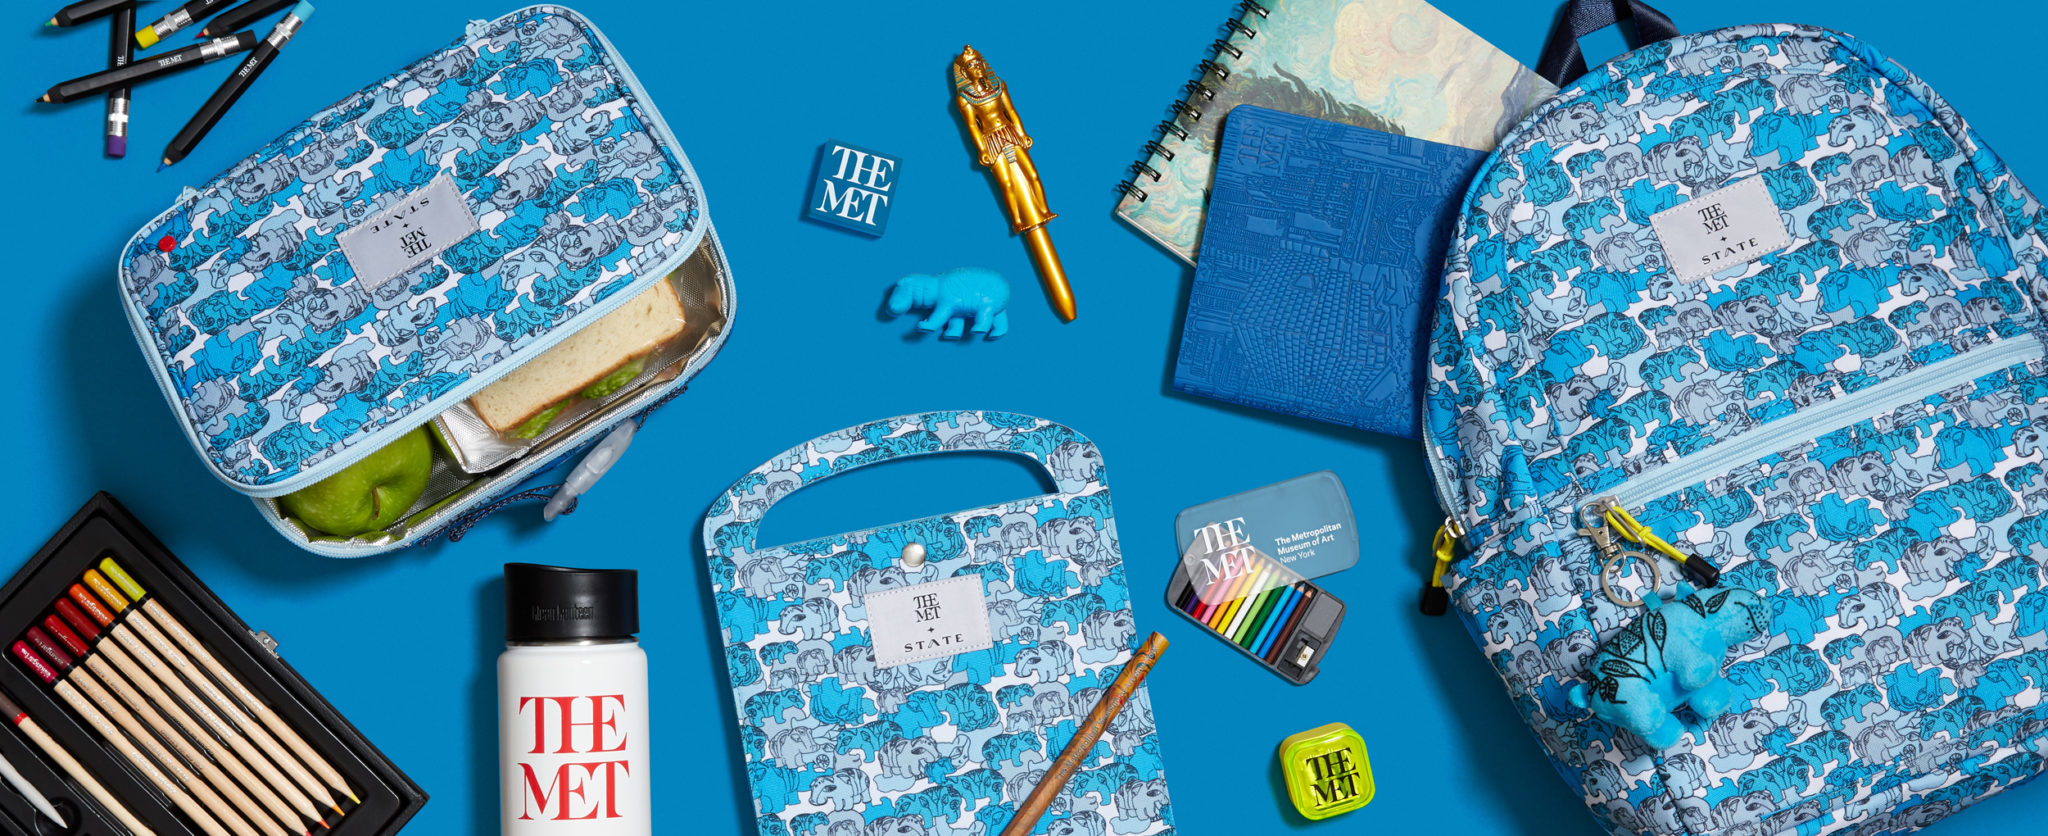 e-commerce header of the Met x State collaboration with hippo backpack, lunch box, art folio, and supplies on blue background